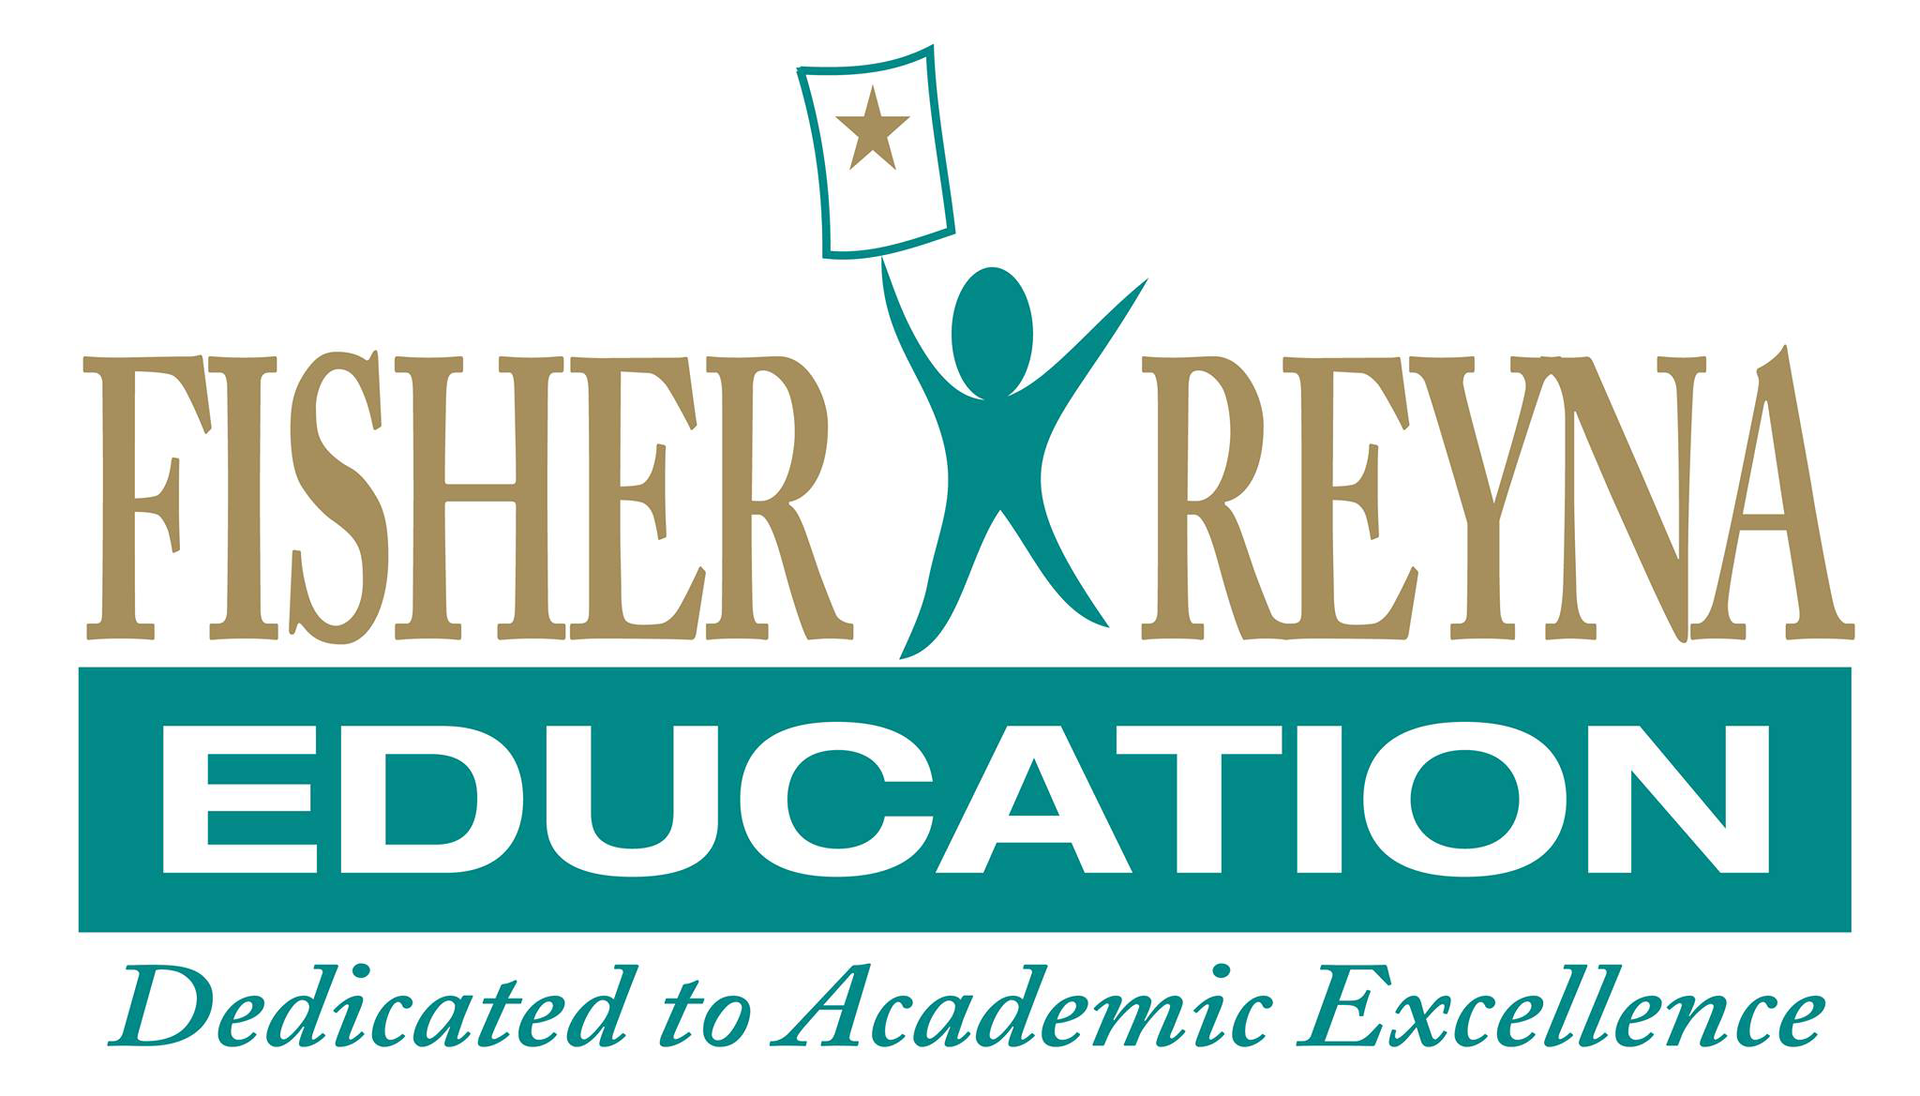 Fisher Reyna Education